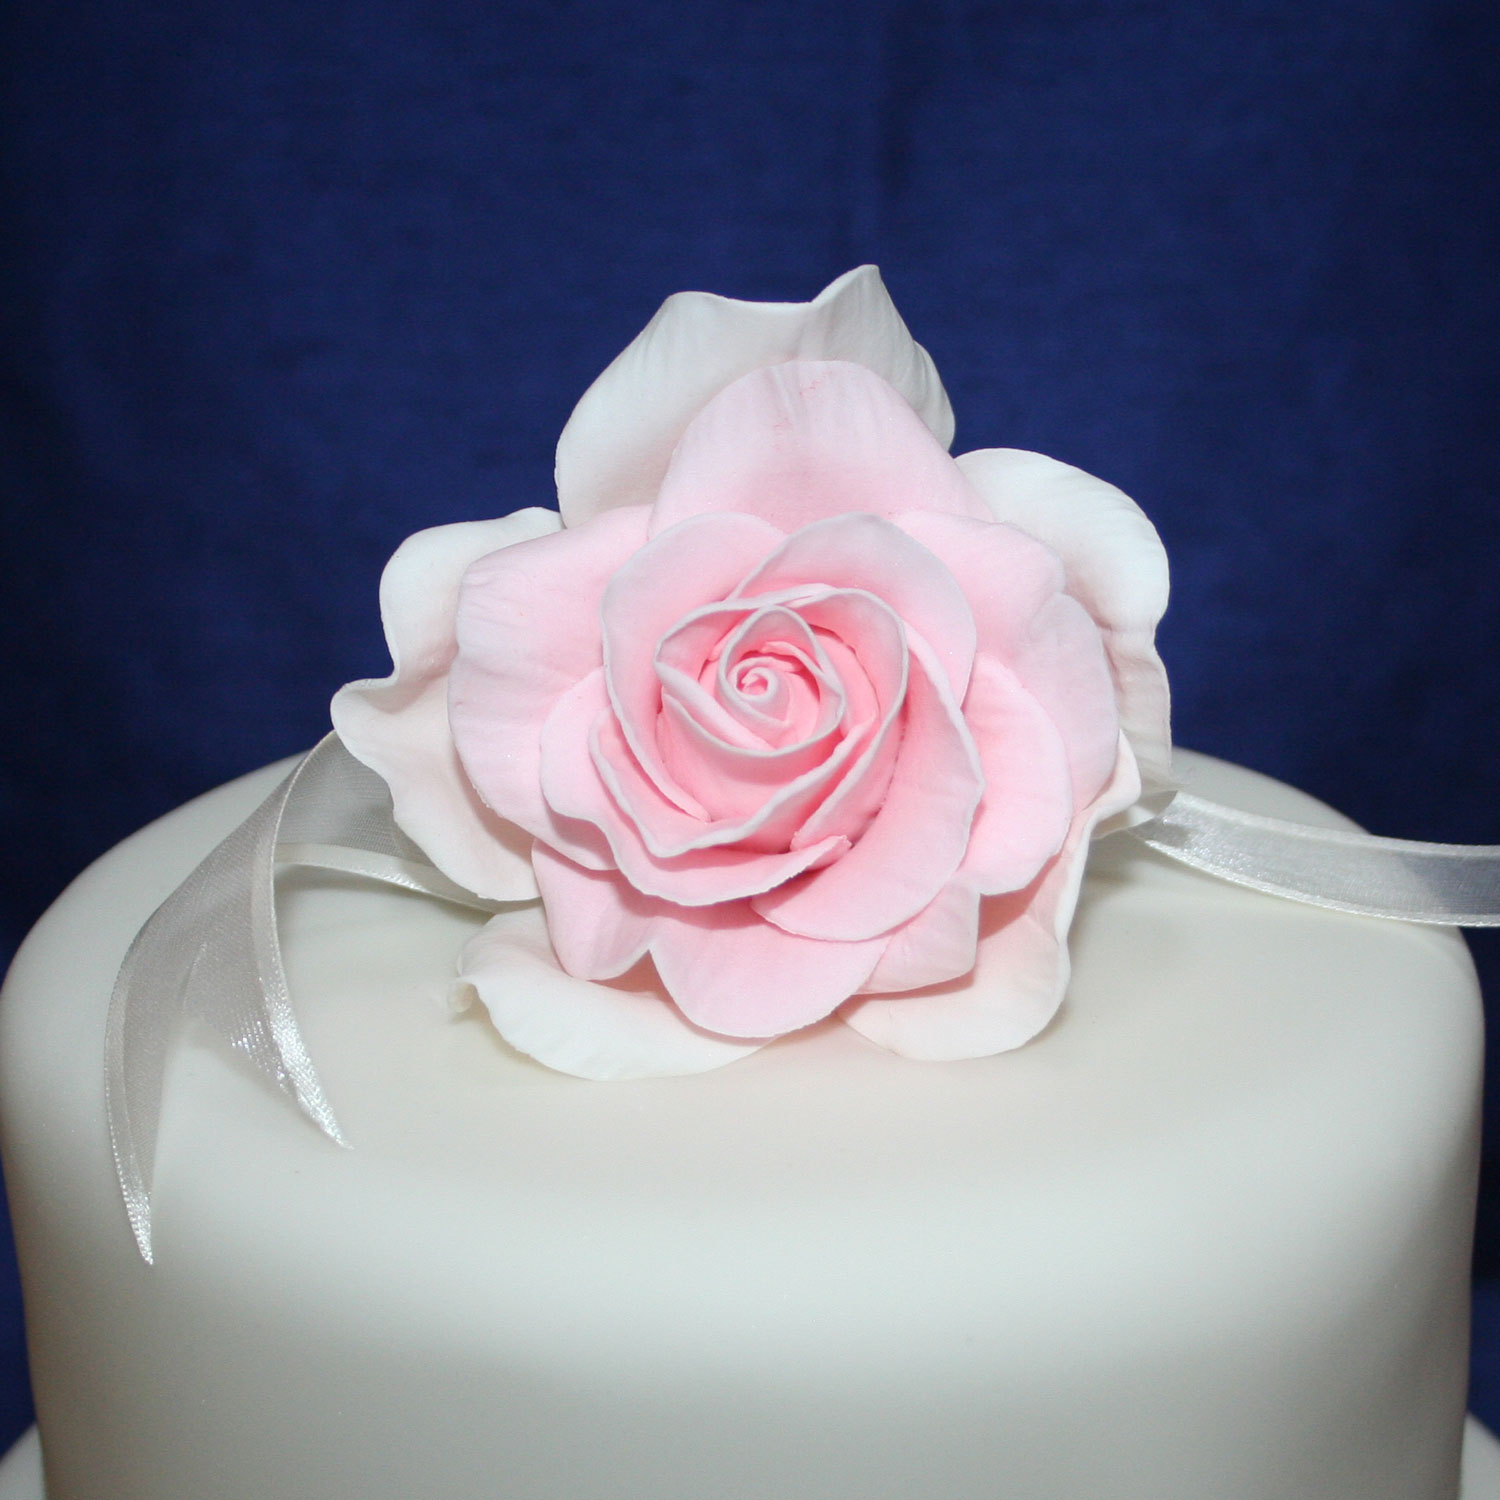 Handcrafted Vintage Pink Sugar Rose